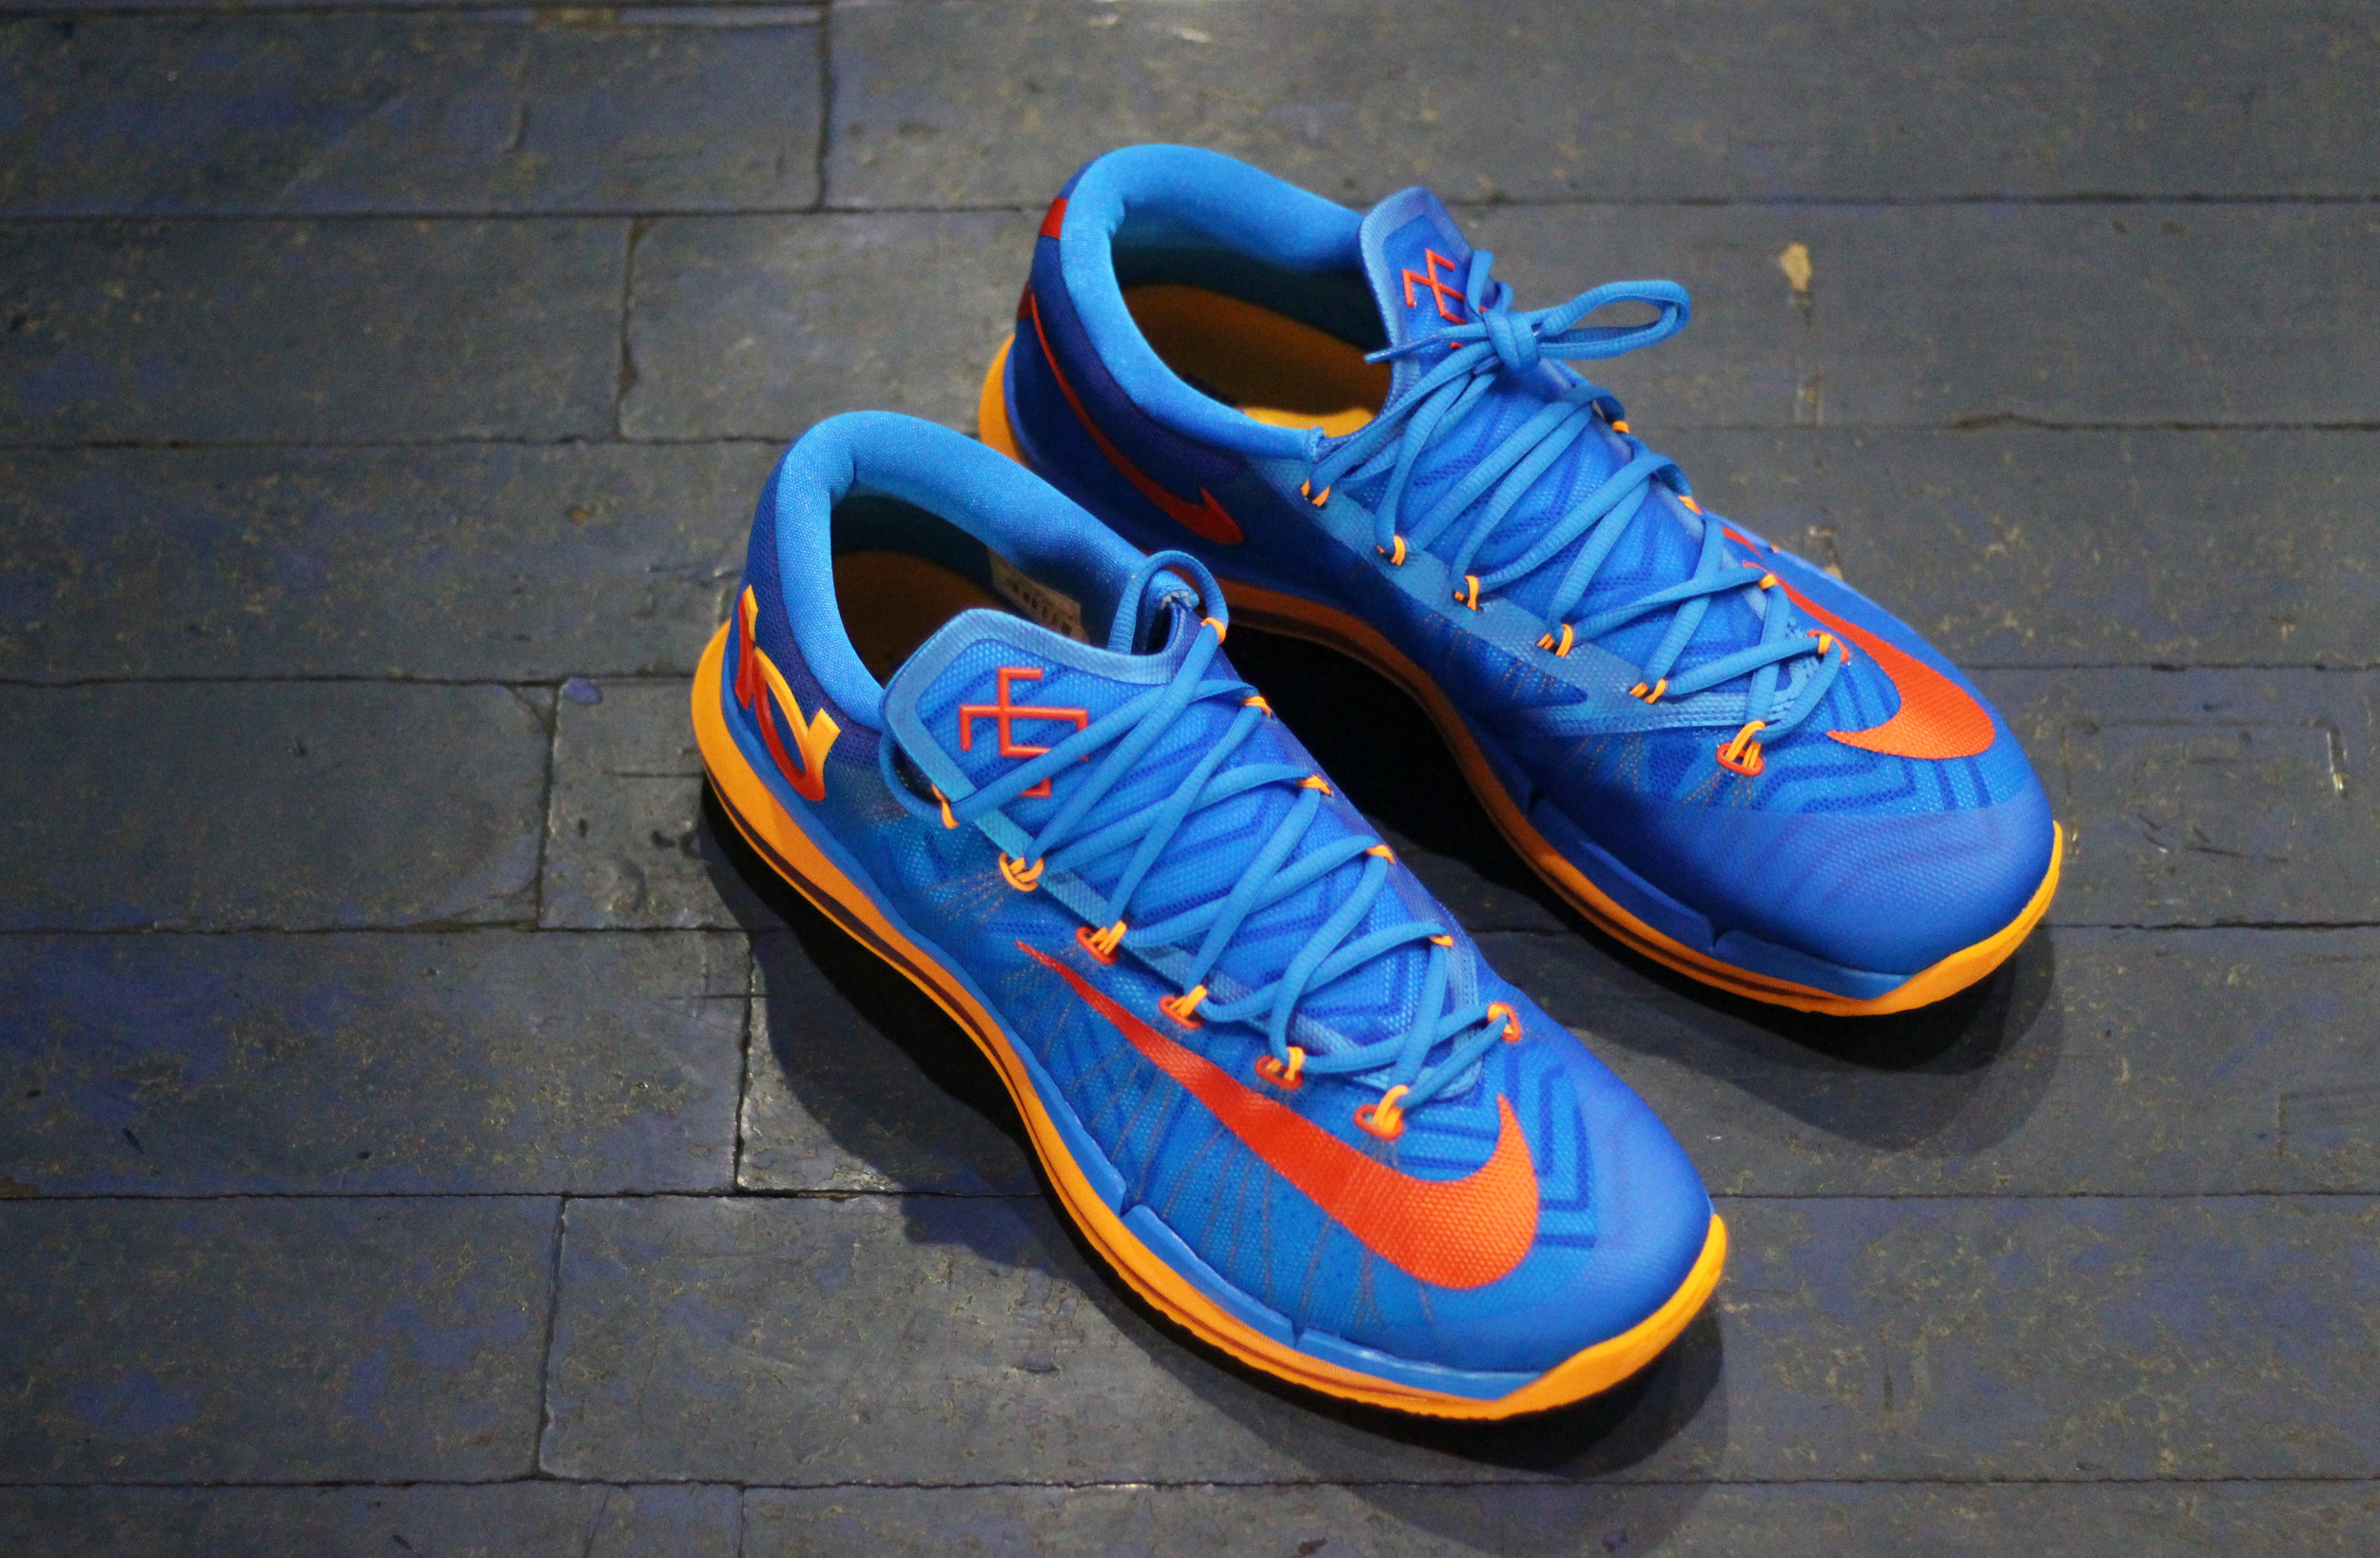 new arrival 86dd8 b1f54 authentic nike shox elite basketball sneakers 2e30f c3112  new style men nike  shox sale. kd 6 low shoes ph 5c464 3fcdc